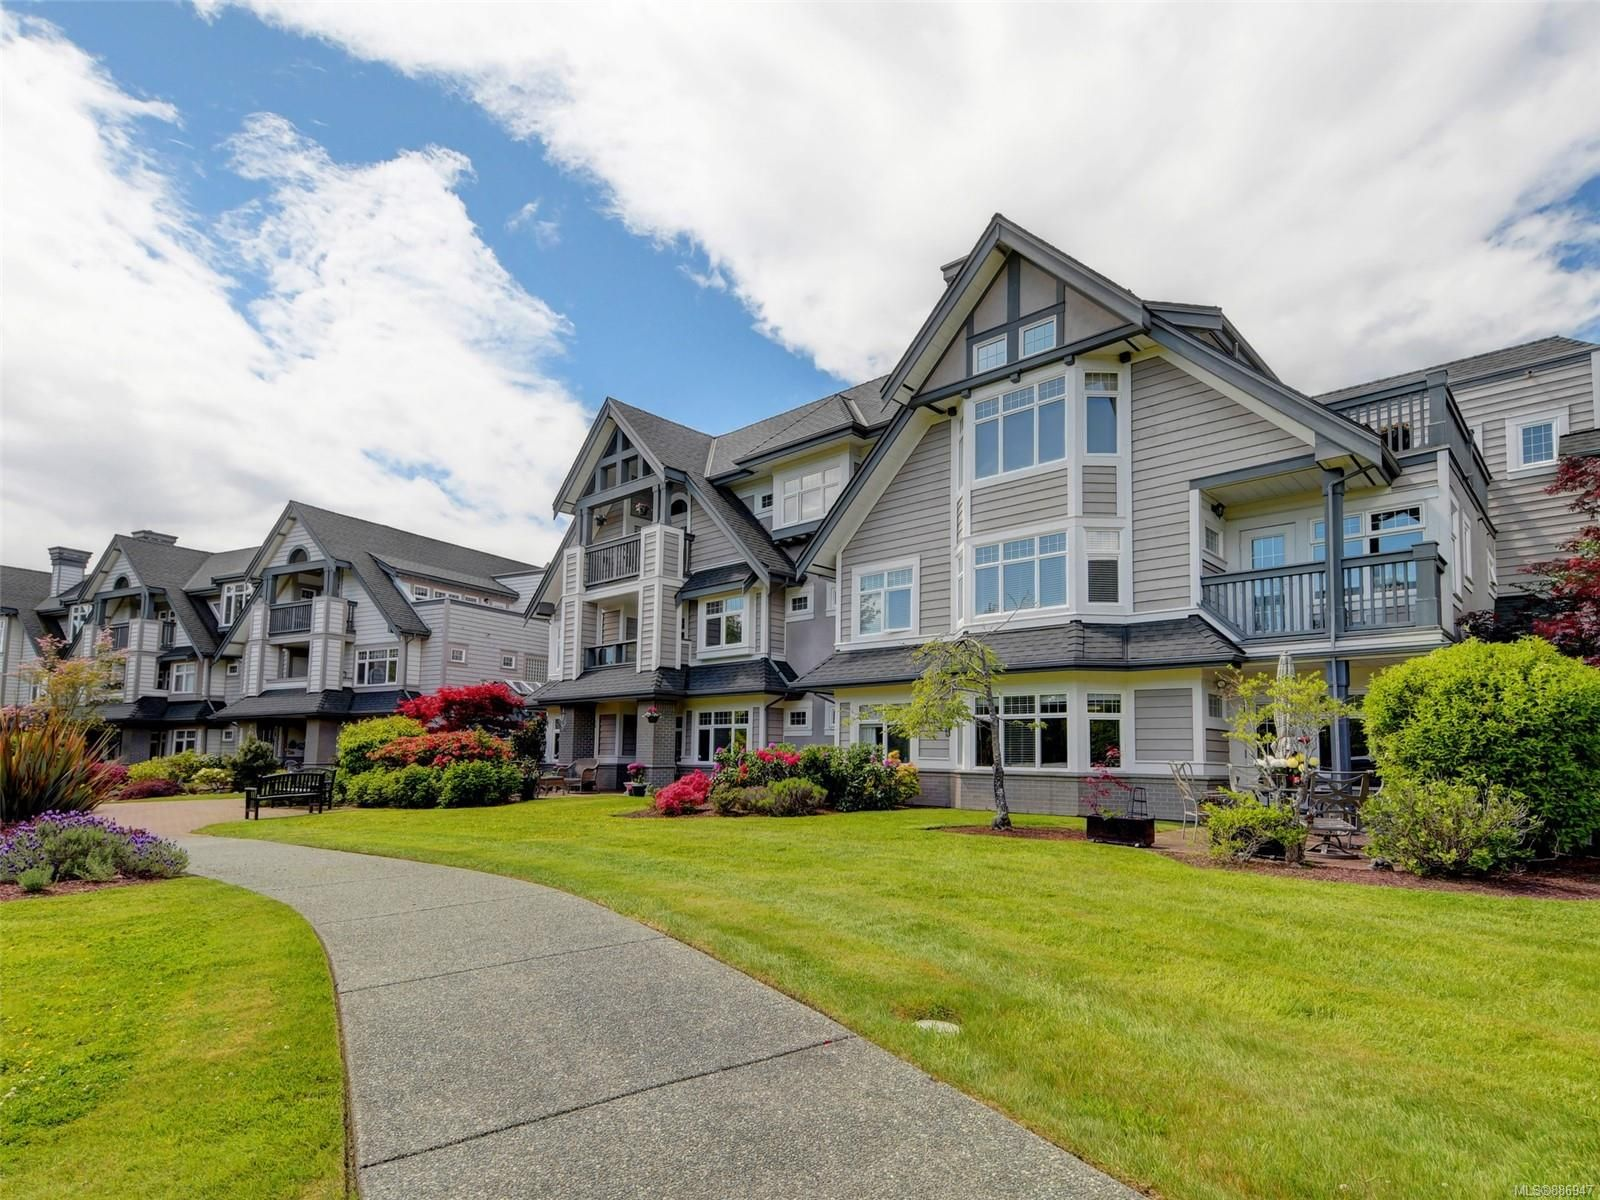 Main Photo: 217 4490 Chatterton Way in : SE Broadmead Condo for sale (Saanich East)  : MLS®# 886947